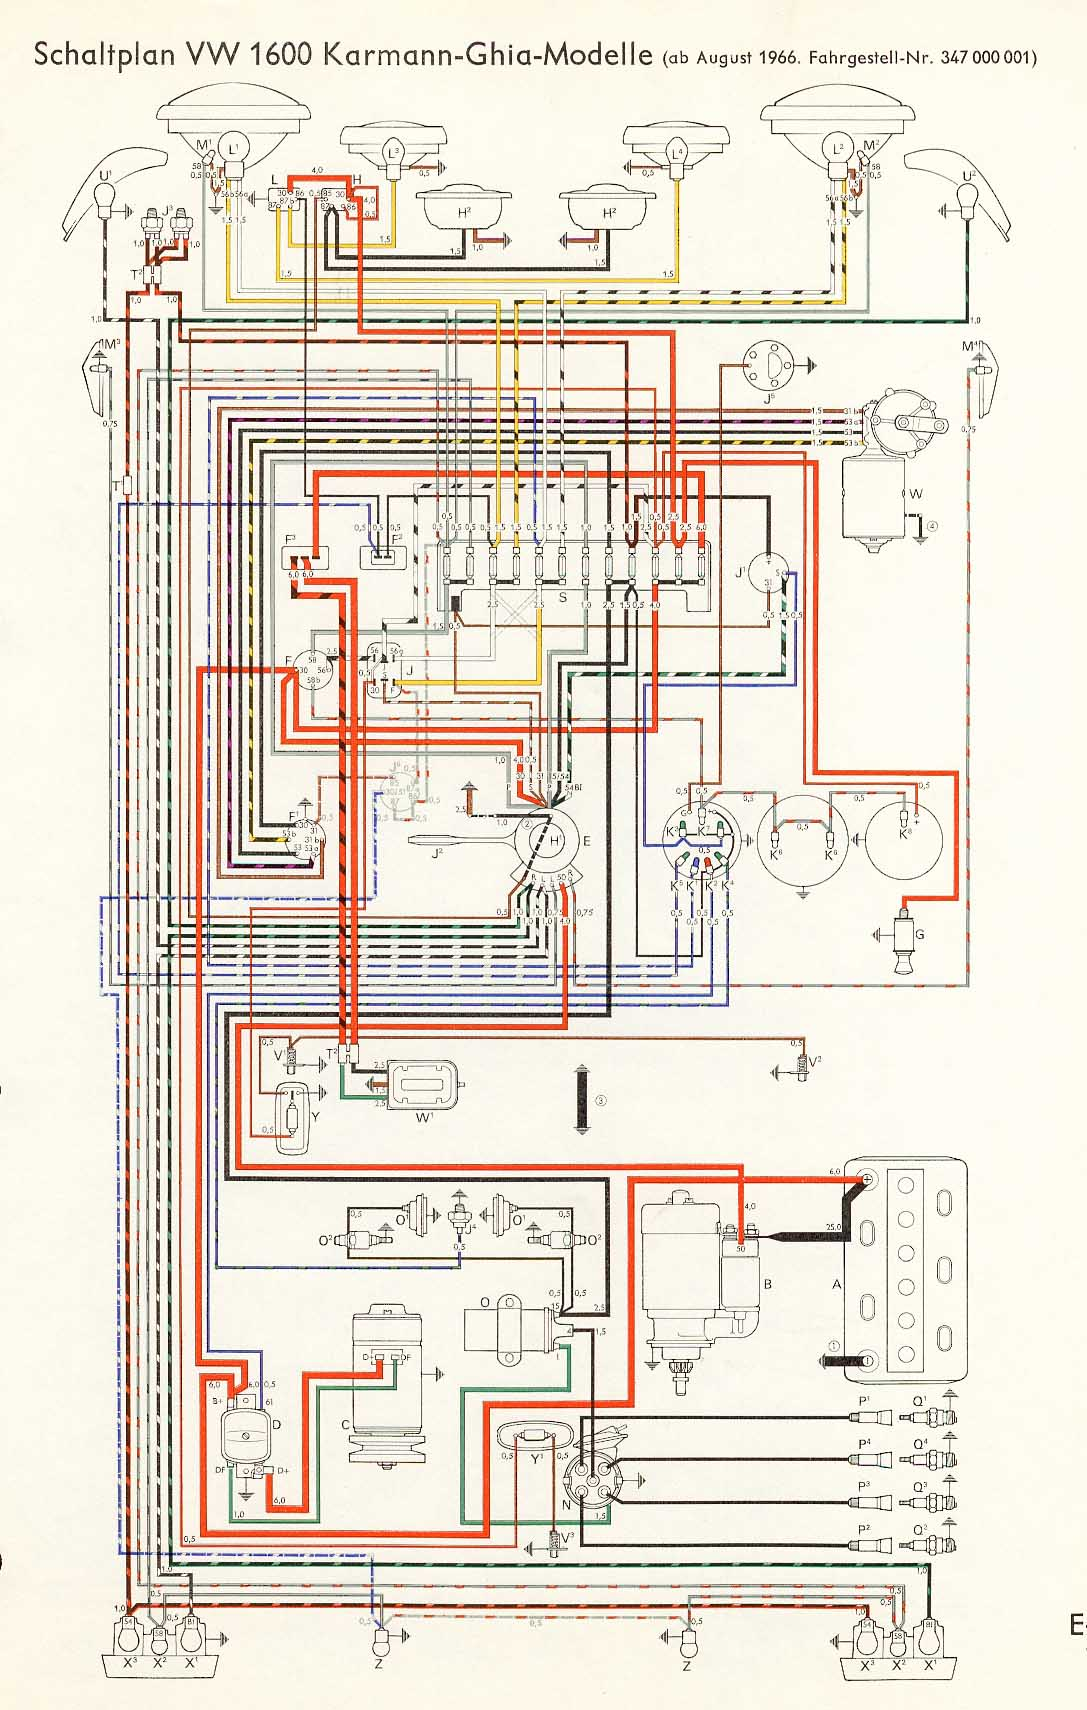 1970 Vw Tach Wiring Diagram Great Design Of 1976 Bug Fuse Box Karmann Ghia 32 Engine Beetle